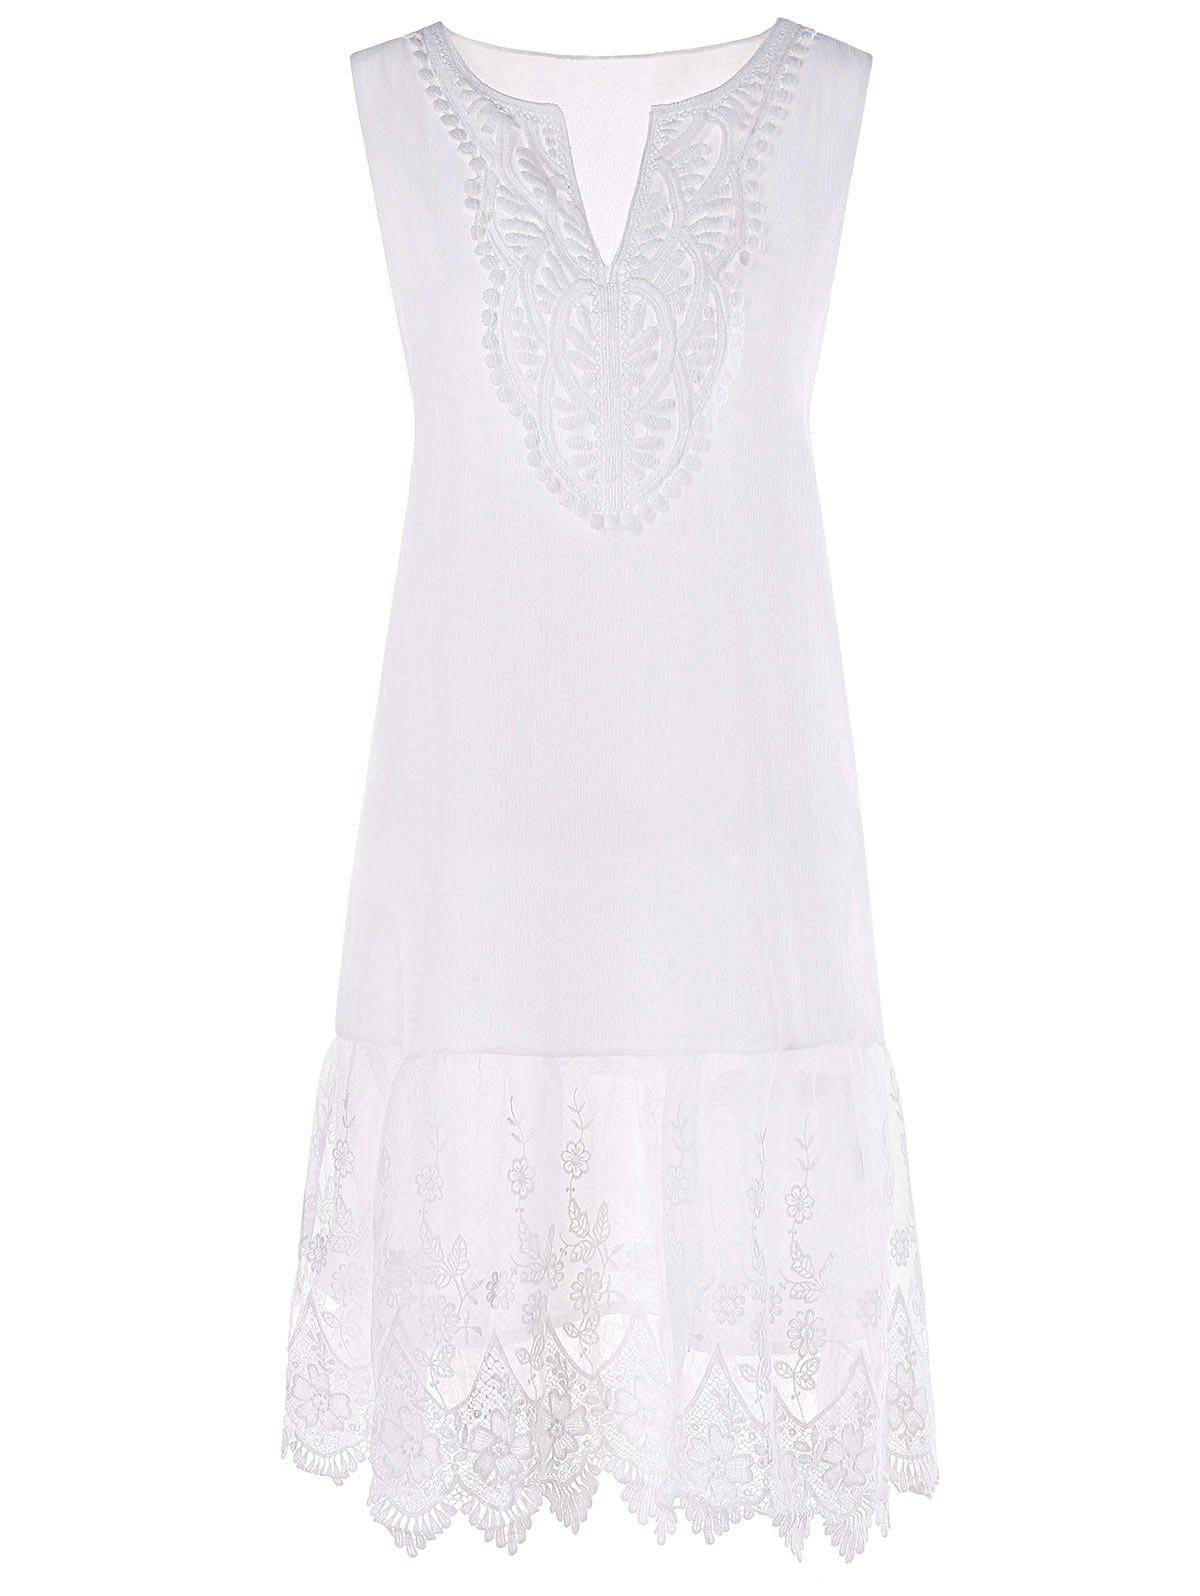 V Neck Embroidered Scalloped Trapeze Dress - WHITE 2XL